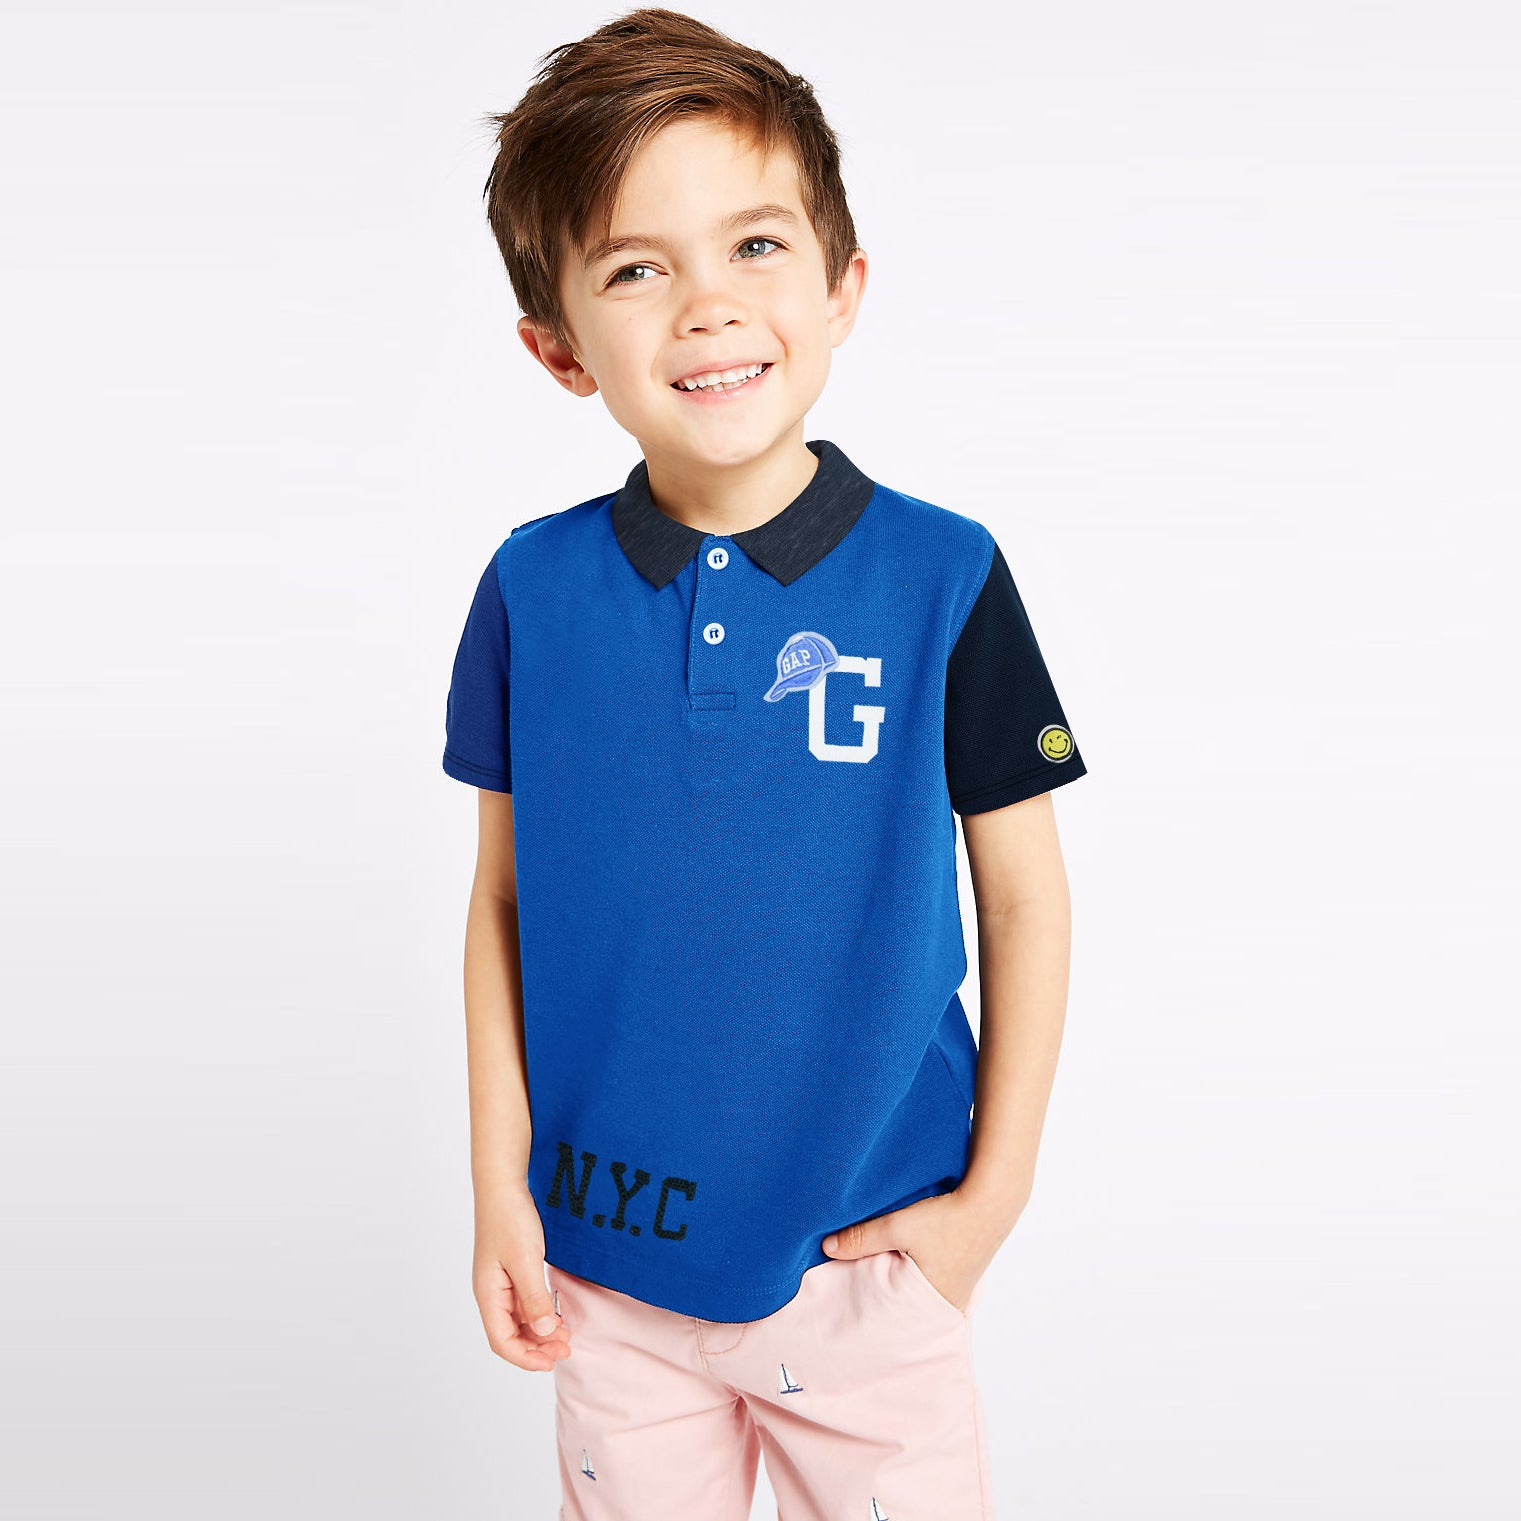 GAP Half Sleeve P.Q Polo Shirt For Kids-BE8627